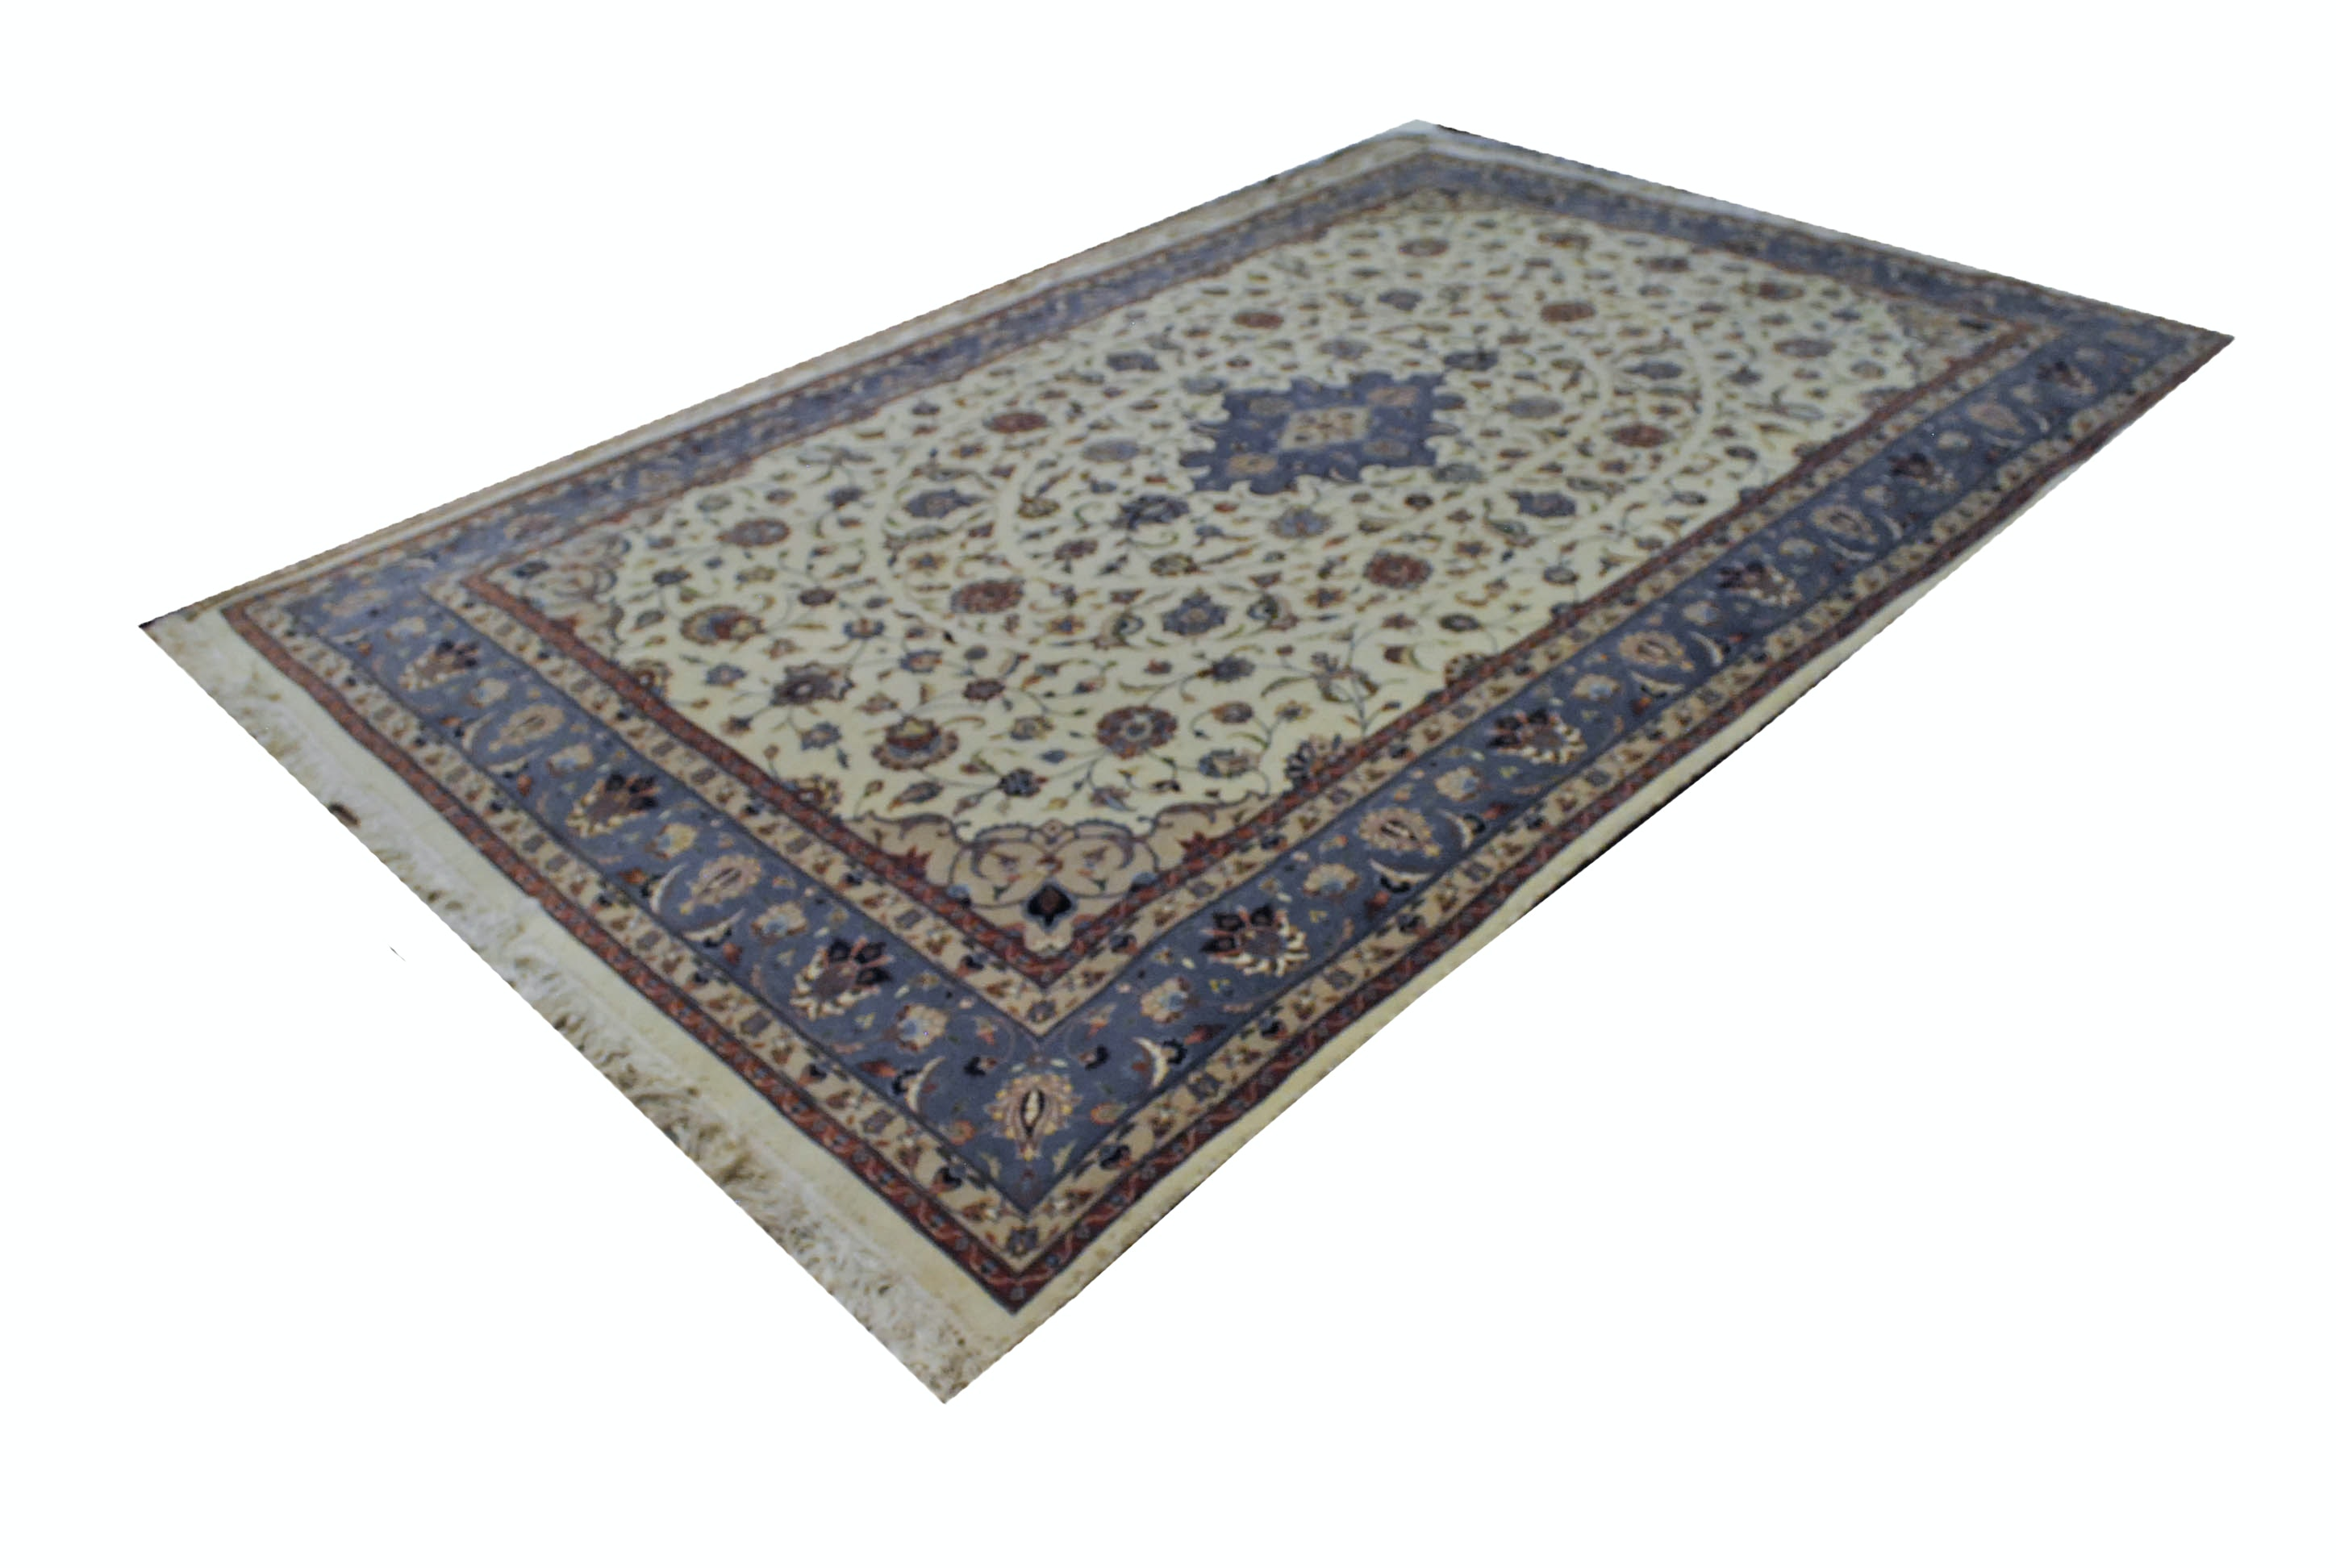 Handwoven Persian-Inspired Rug in Cream, Light Blue and Beige